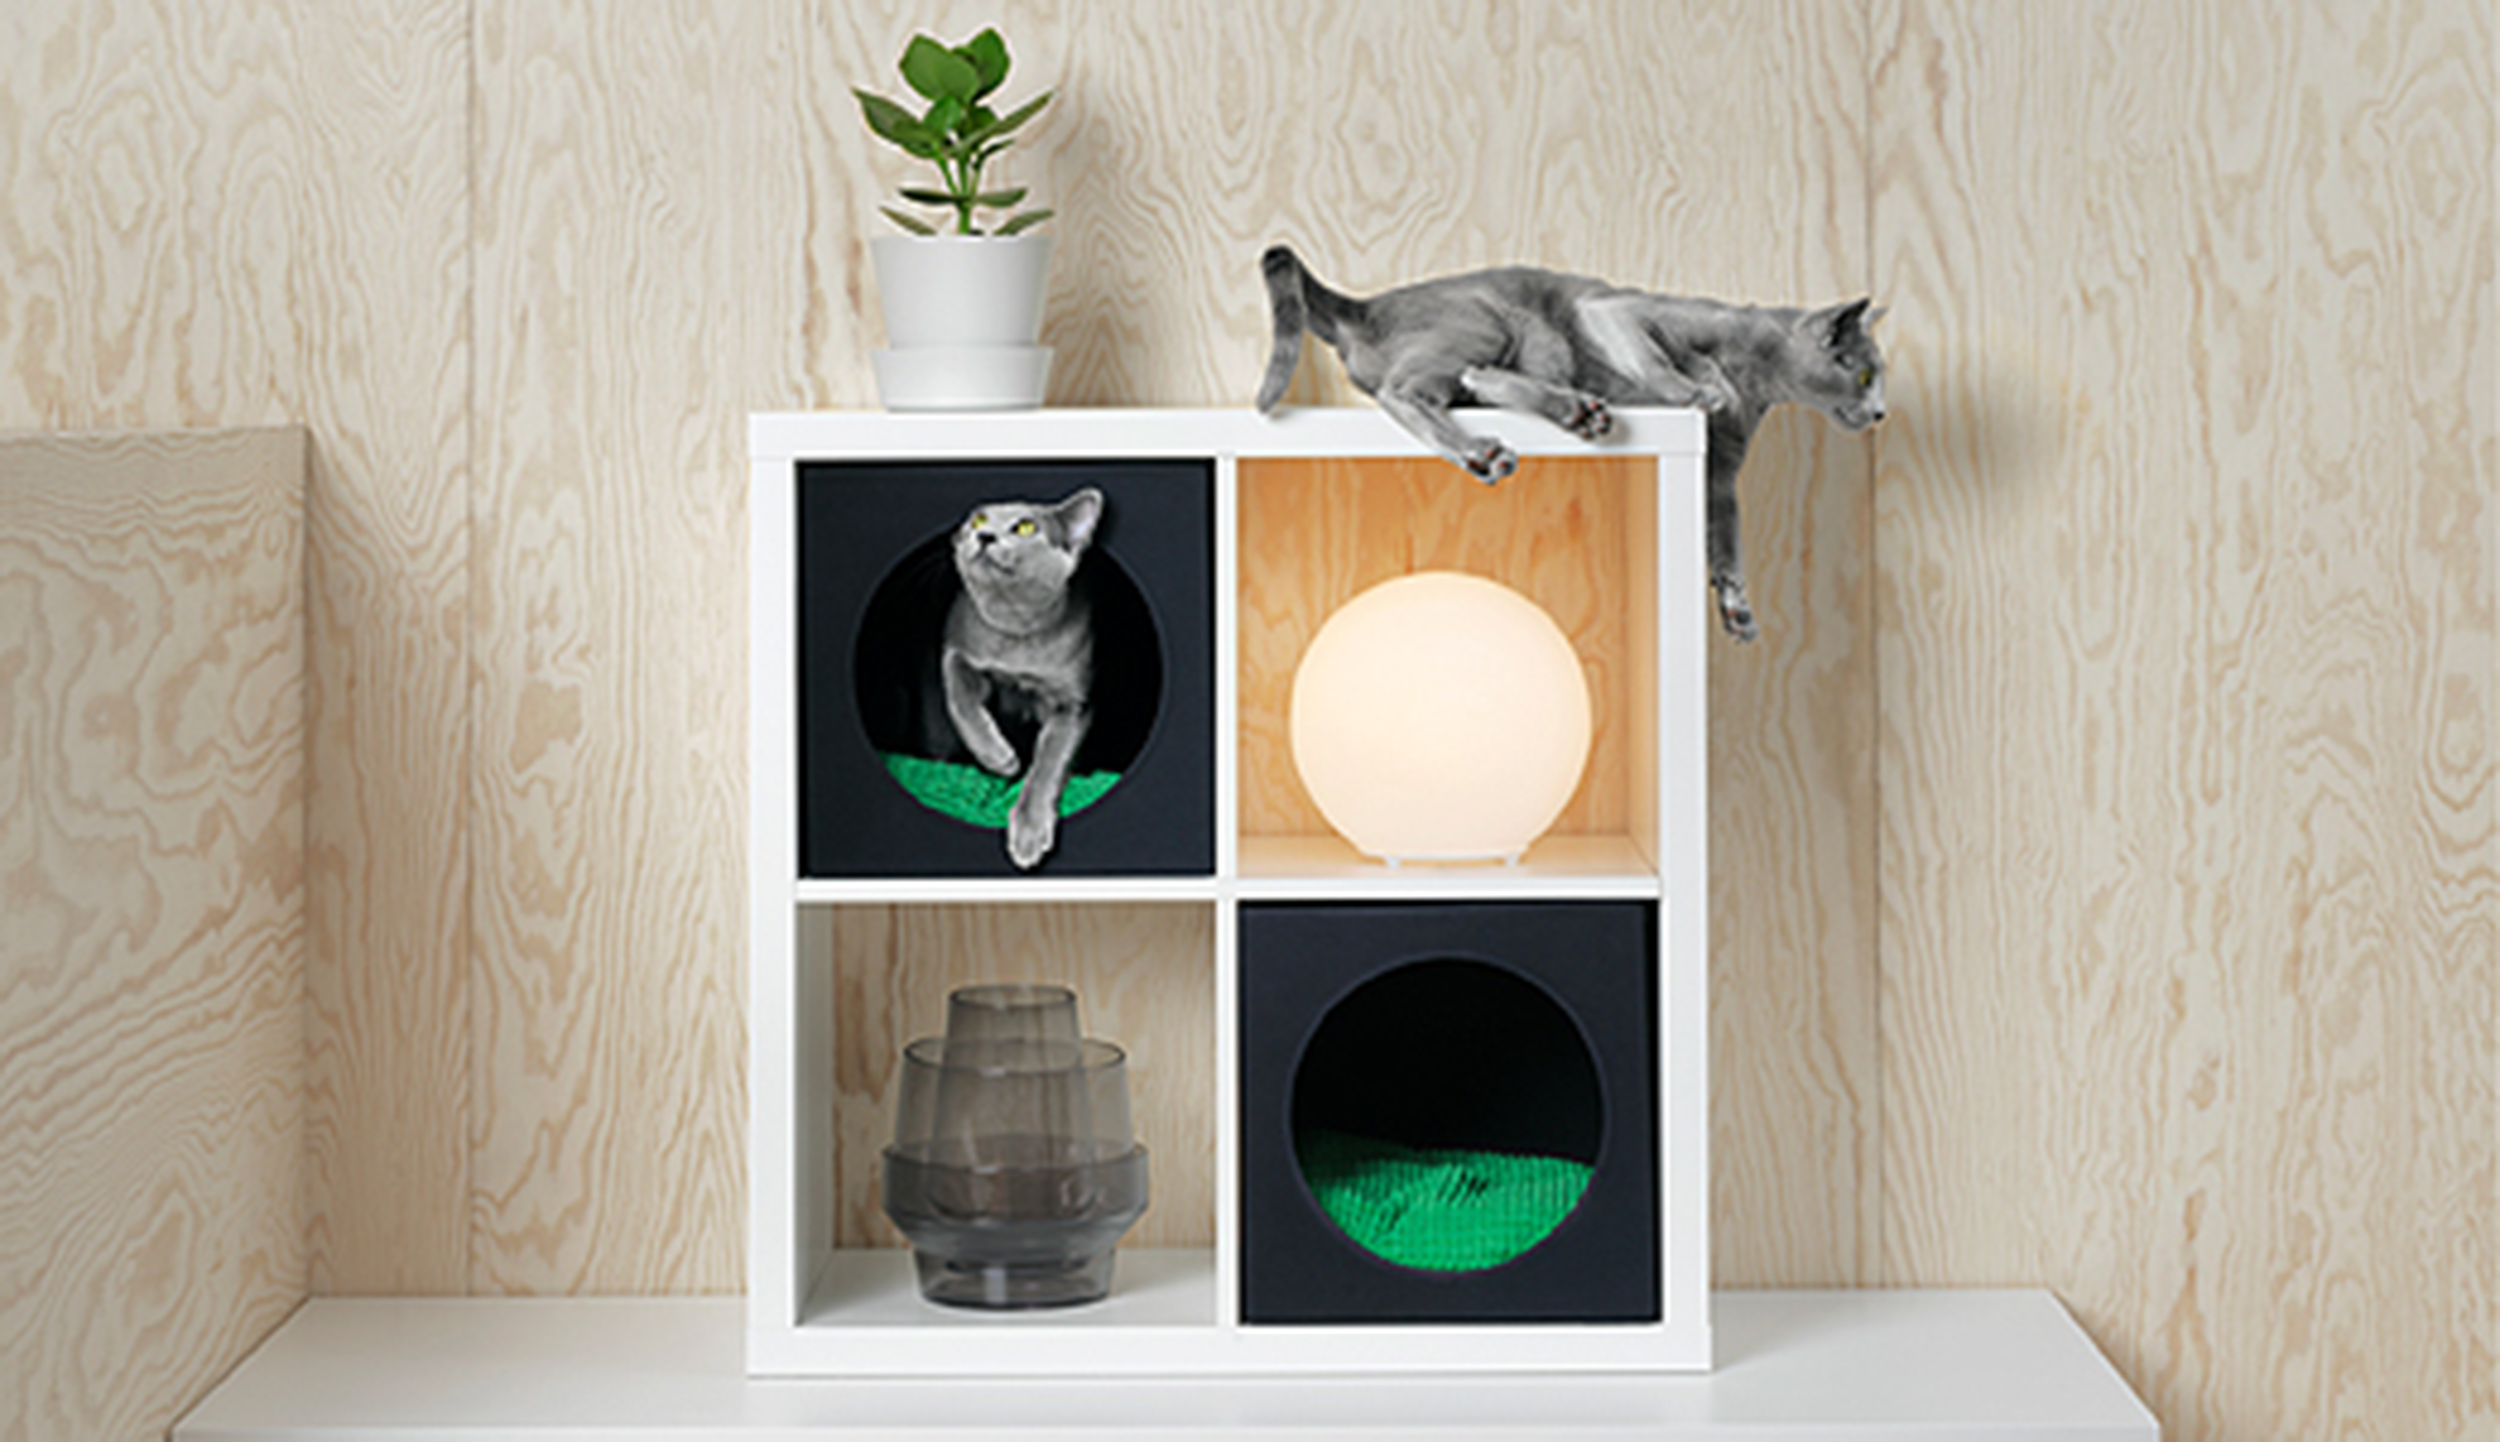 Ikeas LURVIG collection is just for pets  TODAYcom